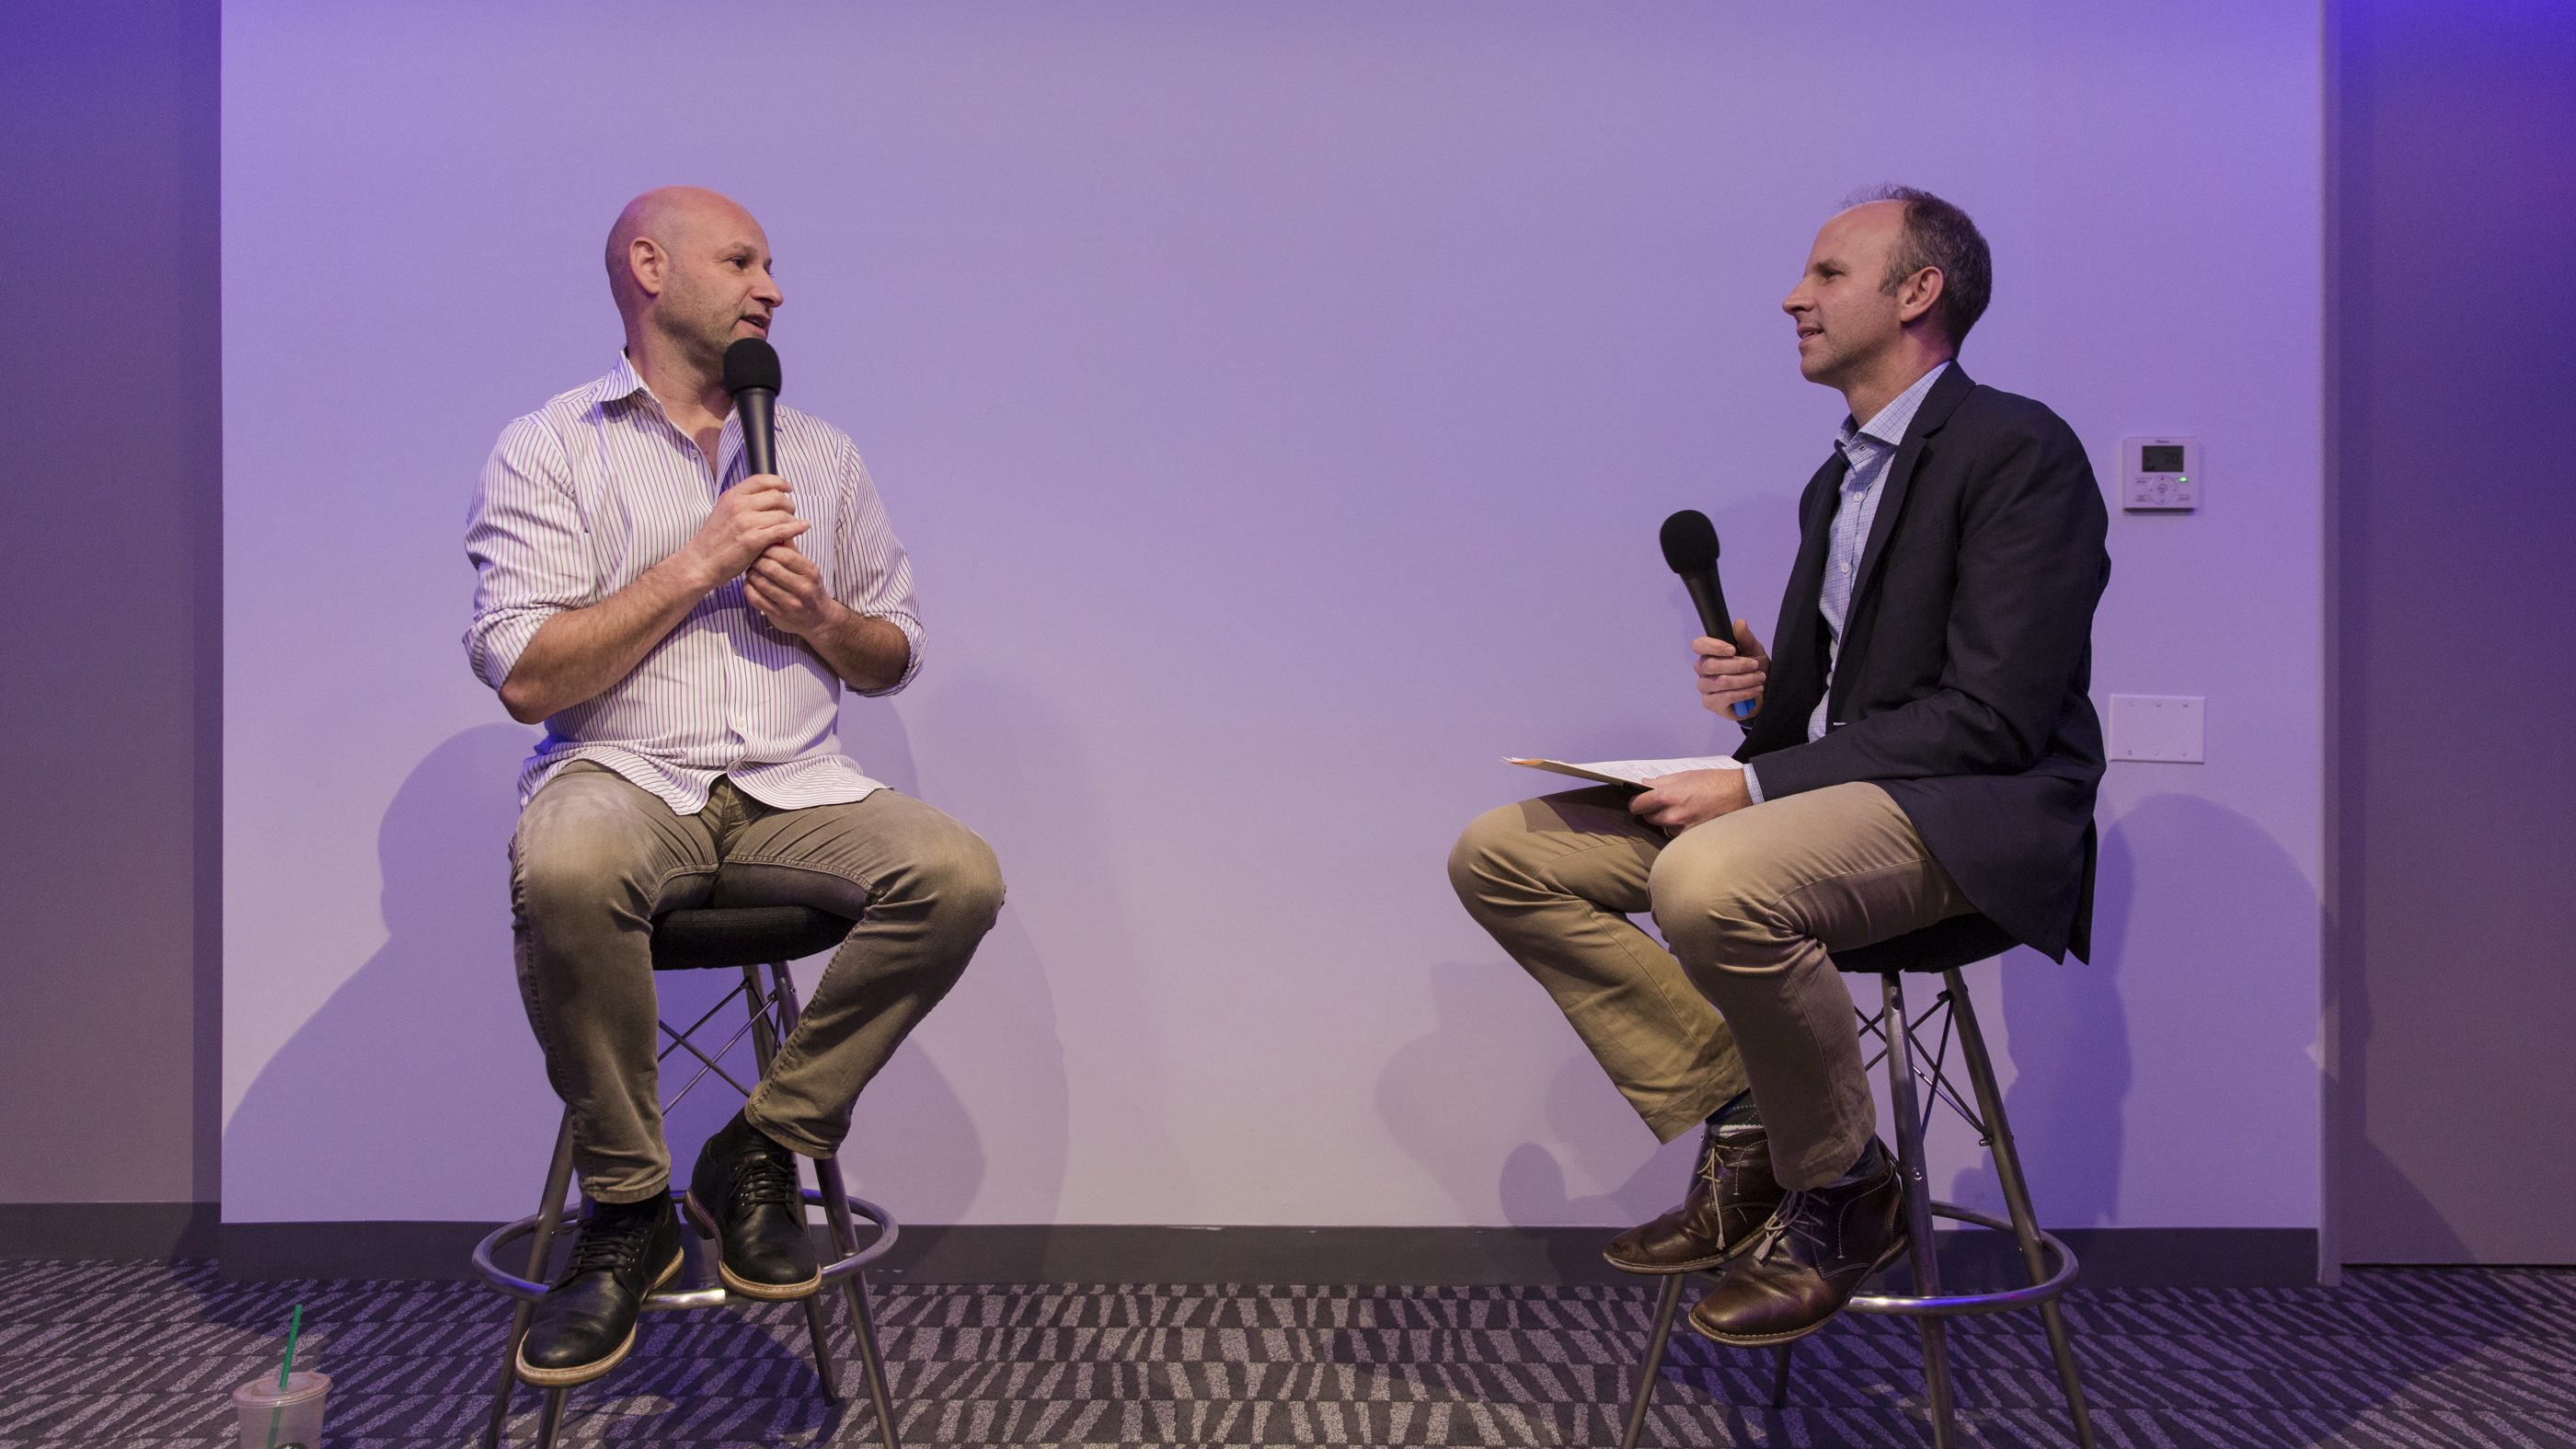 Joe Lubin, left, speaks at a Quartz and Retro Report event with Quartz editor-in-chief Kevin Delaney.